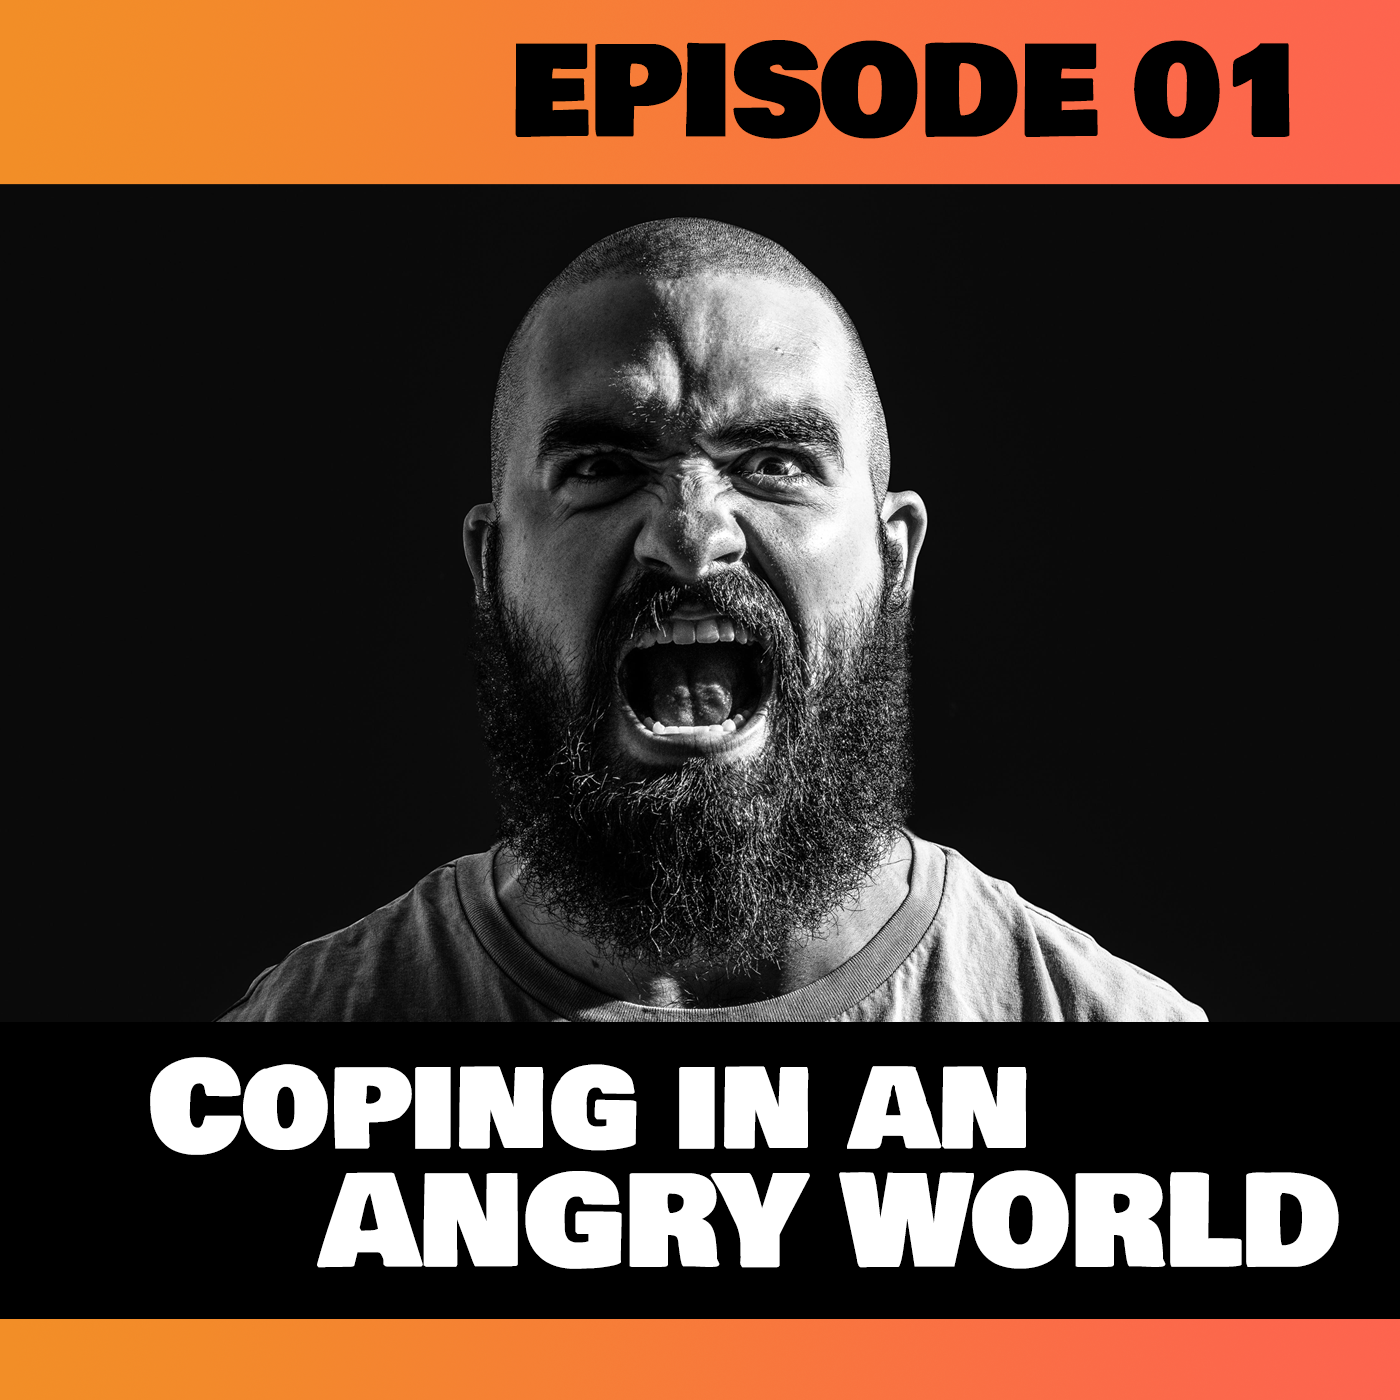 Coping in an Angry World